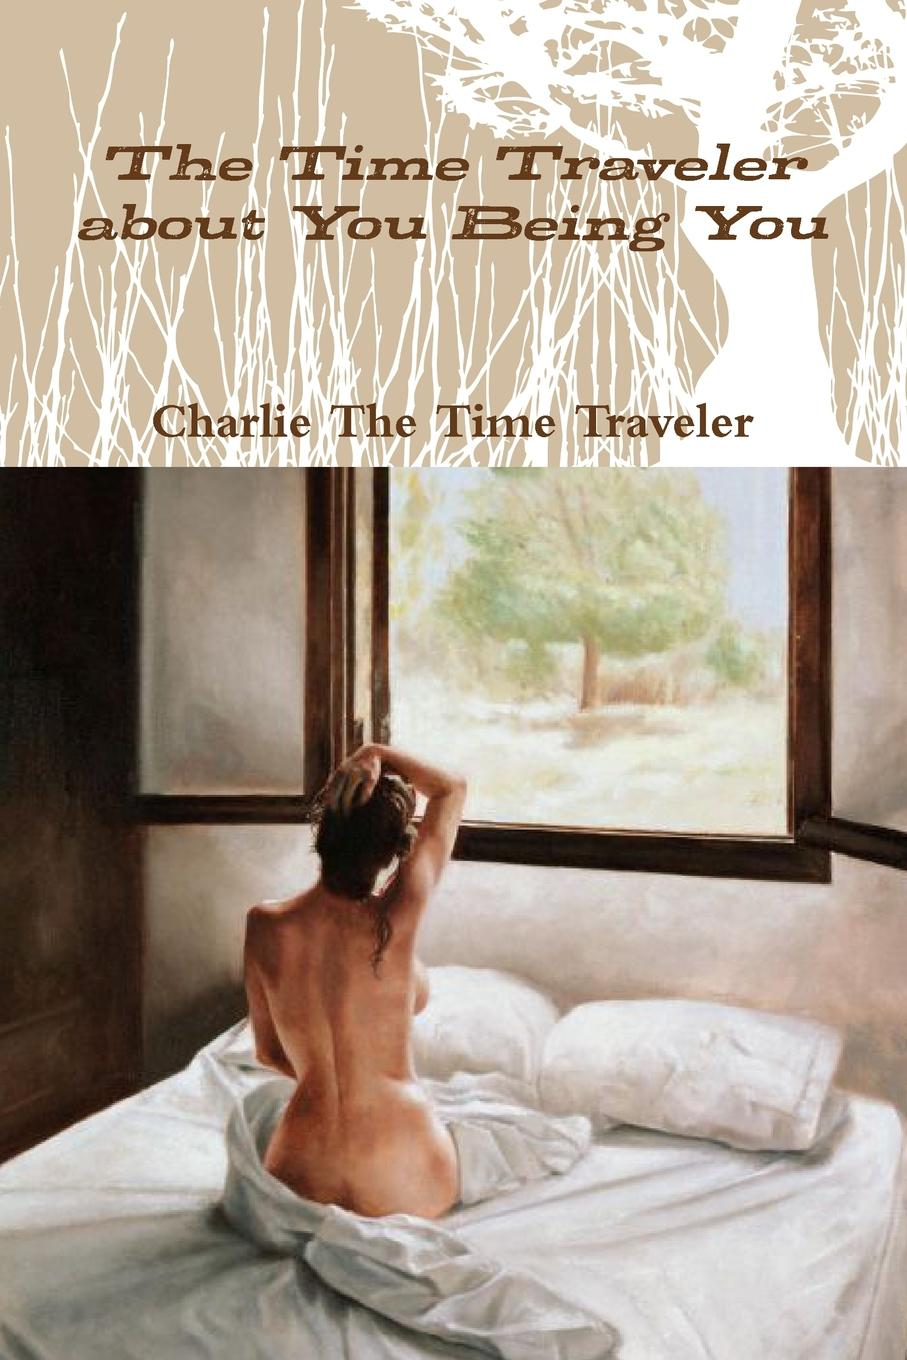 Charlie The Time Traveler The Time Traveler about You Being You jon mcgregor this isn't the sort of thing that happens to someone like you